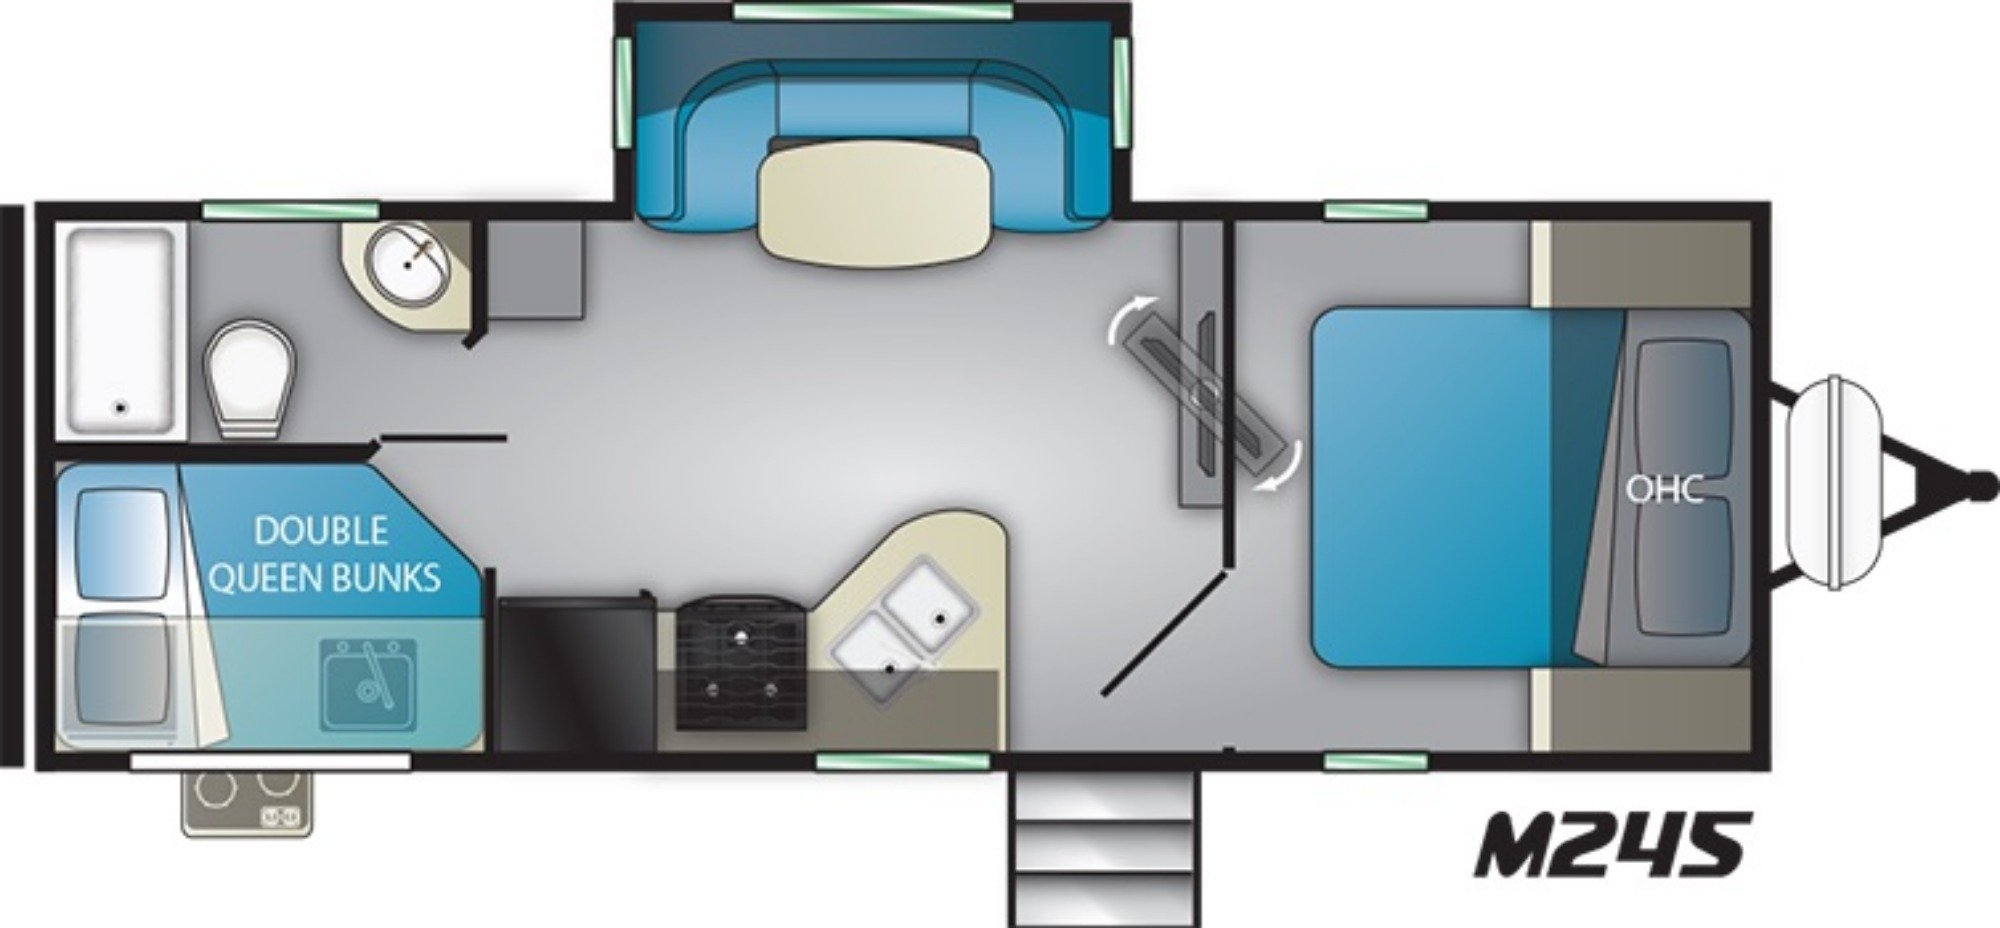 View Floor Plan for 2019 HEARTLAND MALLARD M245